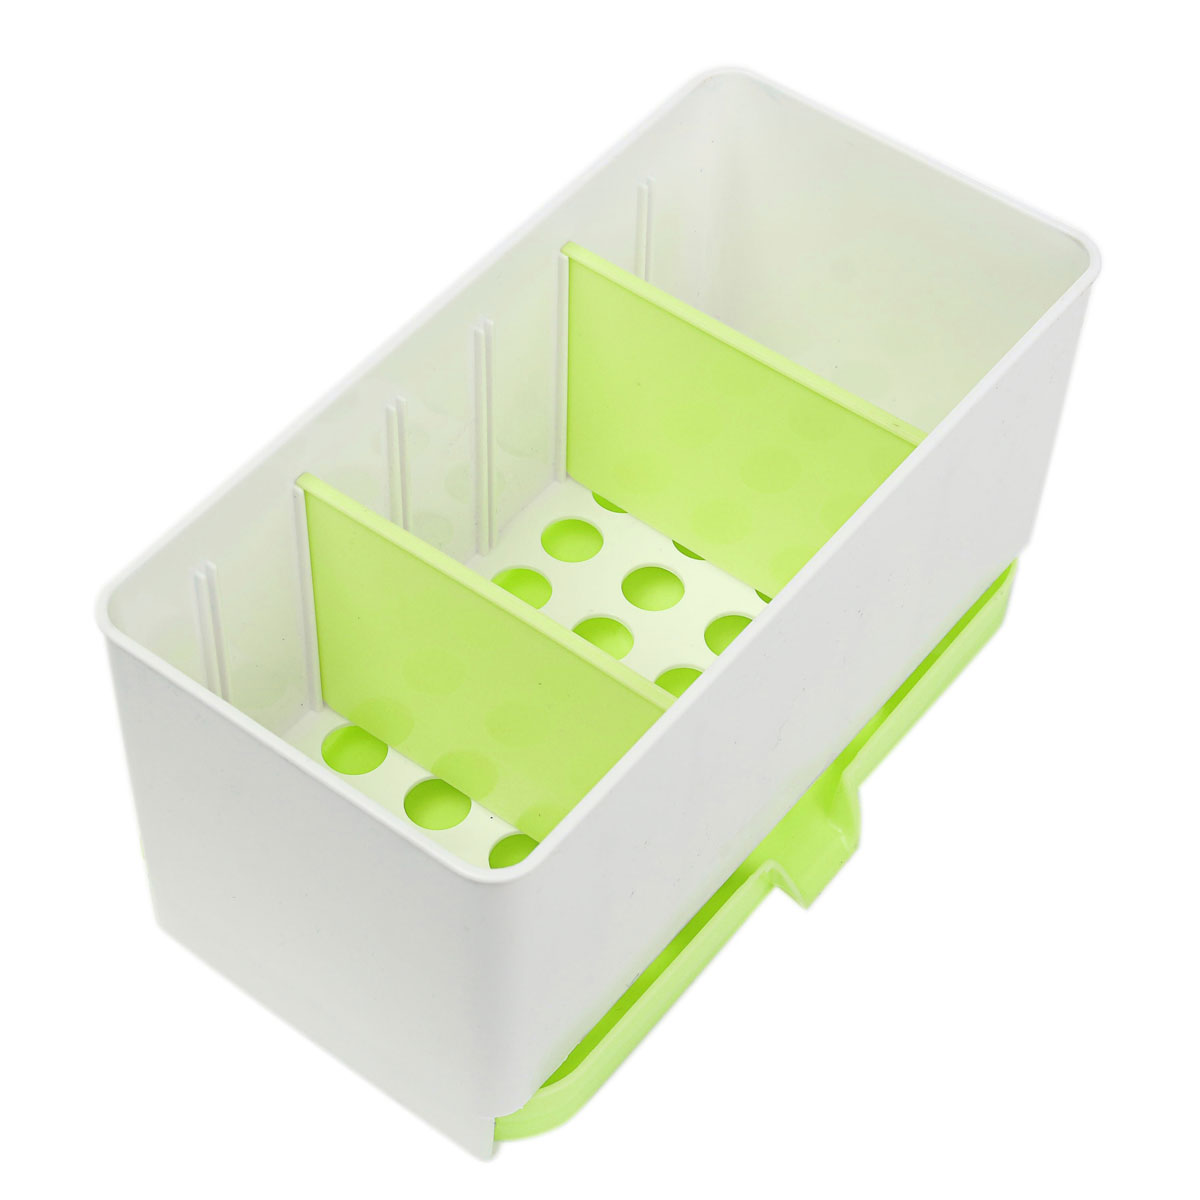 Kitchen Tidy Aliexpresscom Buy Utensils Holder Rack Caddy Sponge Basket Wash